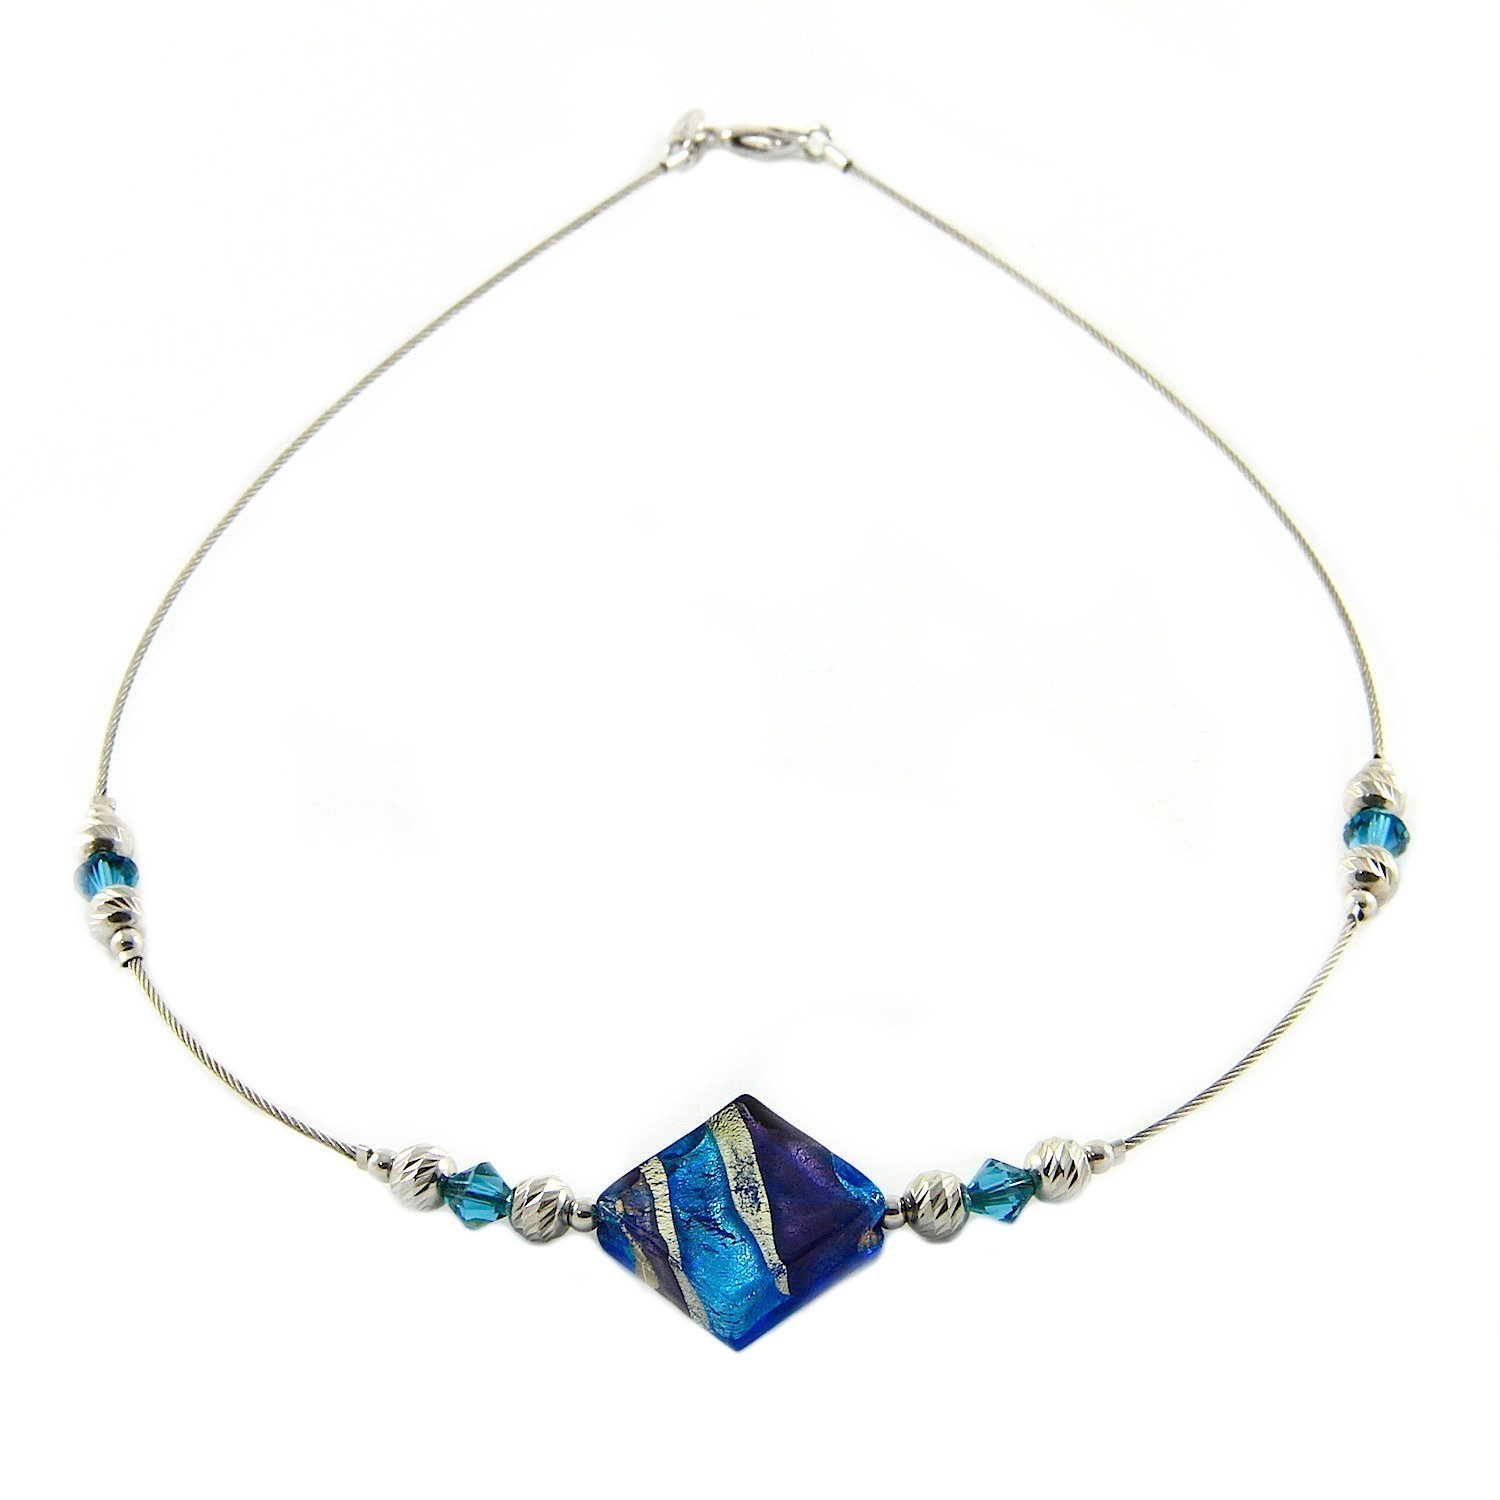 Woman's choker in 925 silver, Murano glass and Swarovski crystals mounted on a stainless steel cable. CAR906-W01